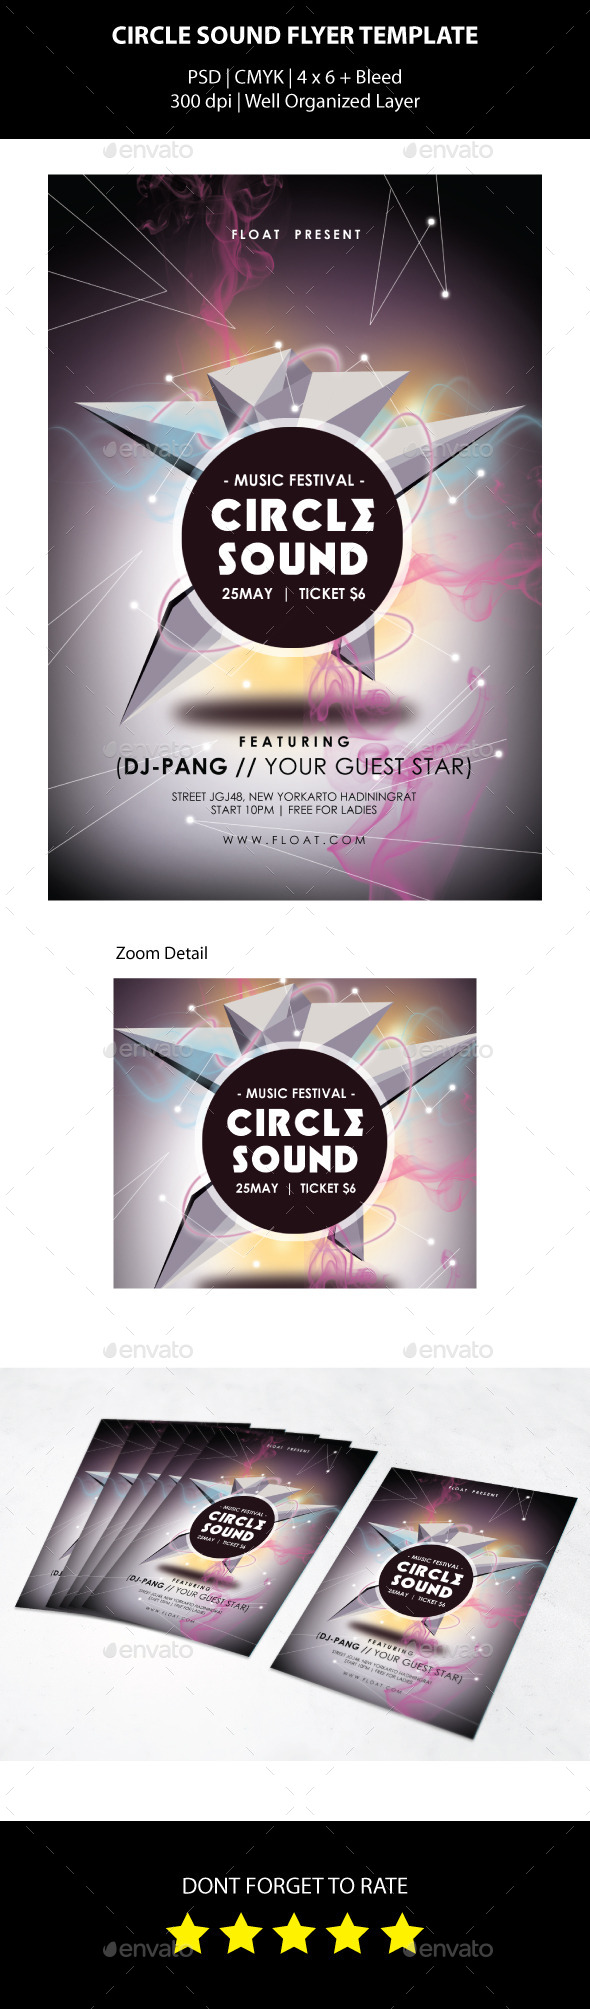 Circle Sound Flyer Template - Events Flyers